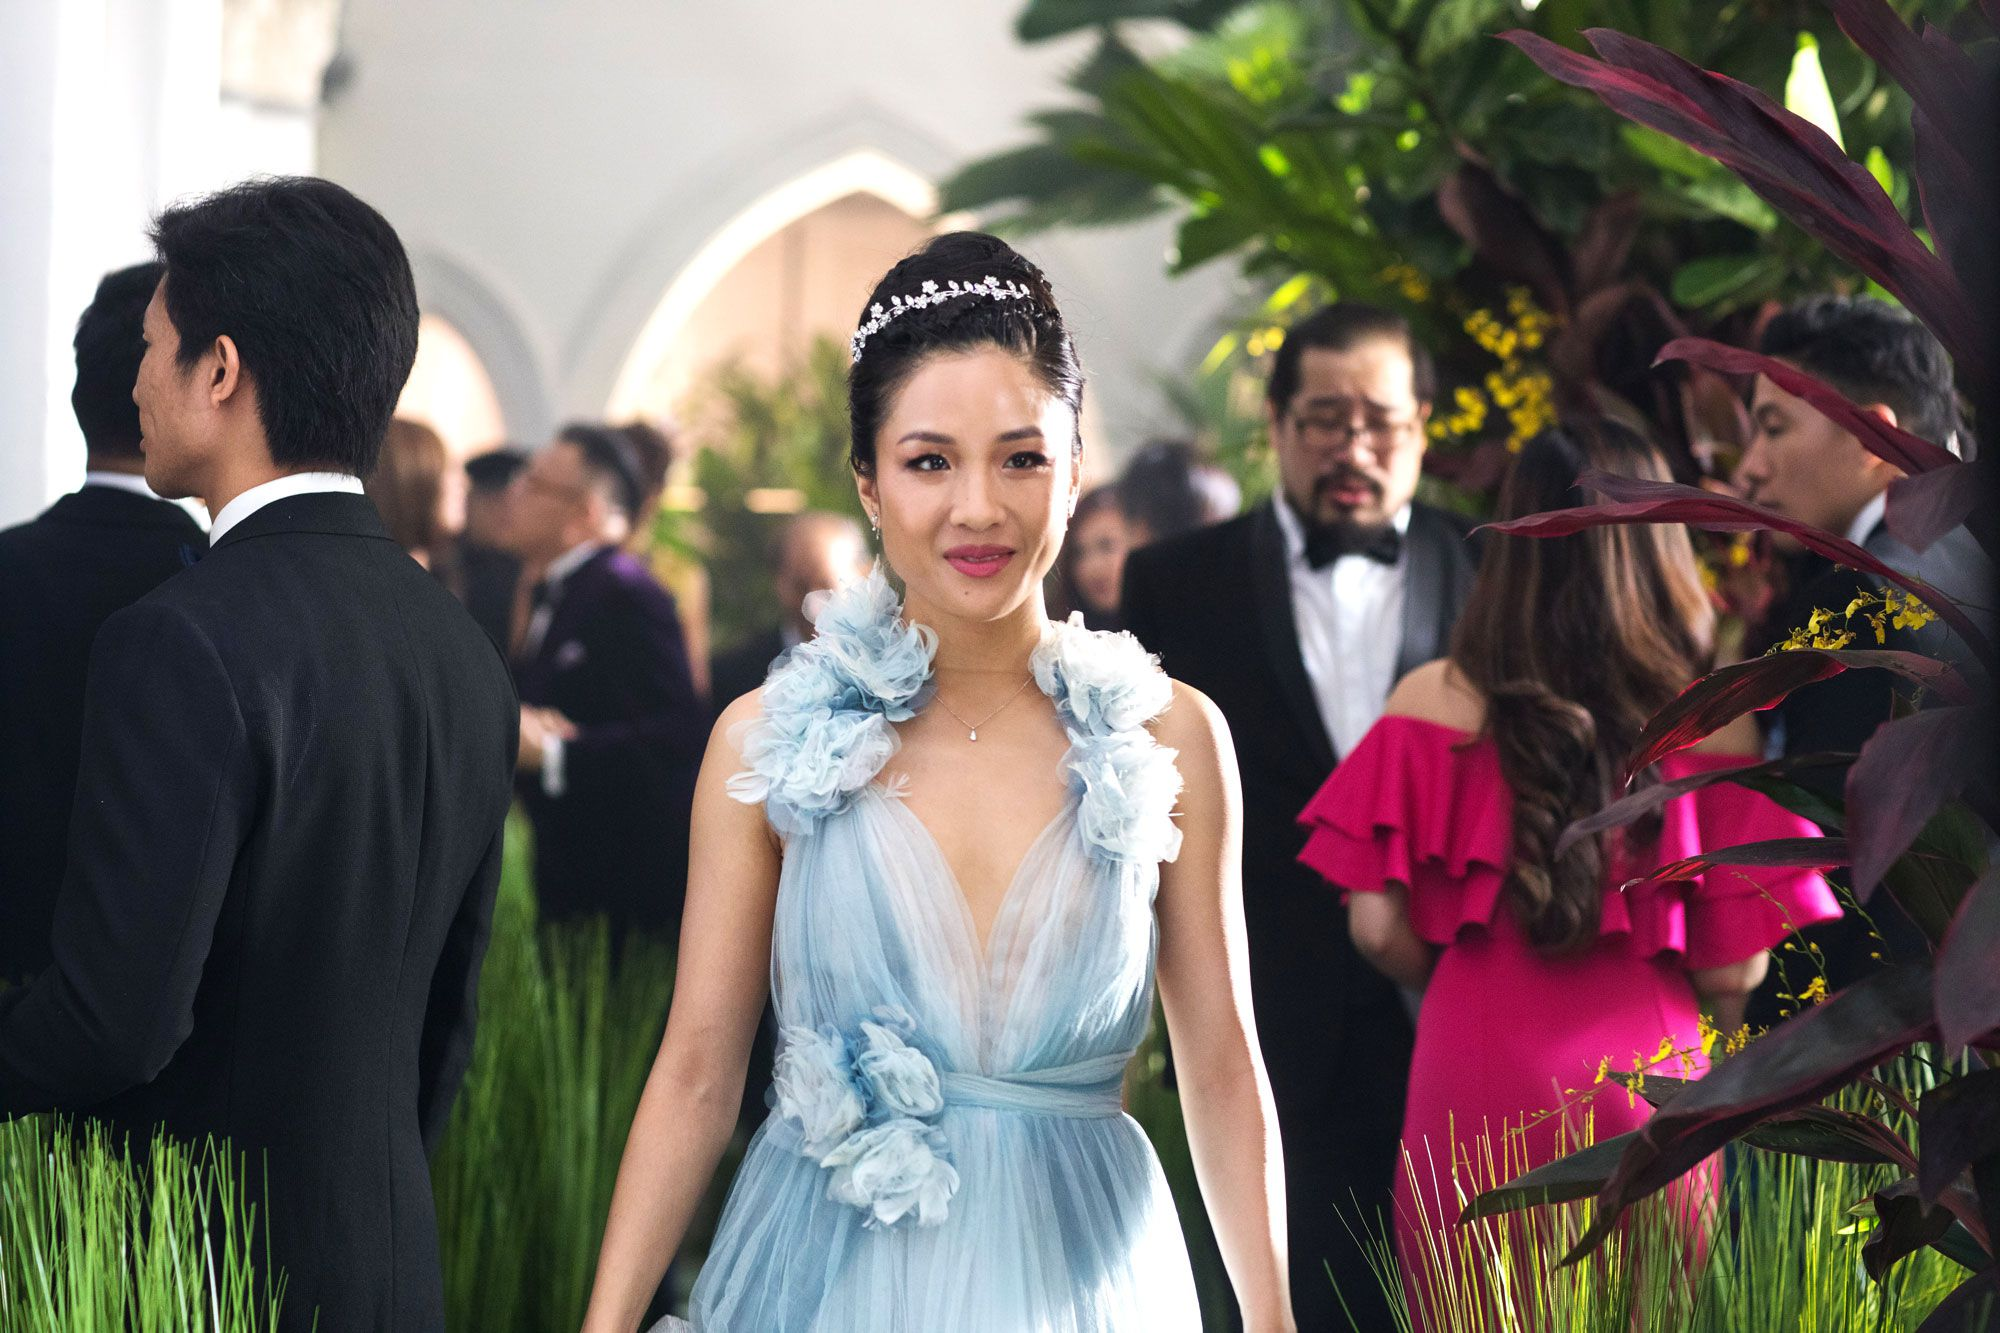 Report: Crazy Rich Asians sequels offered an Asian writer 1/8th of her white co-writer's salary